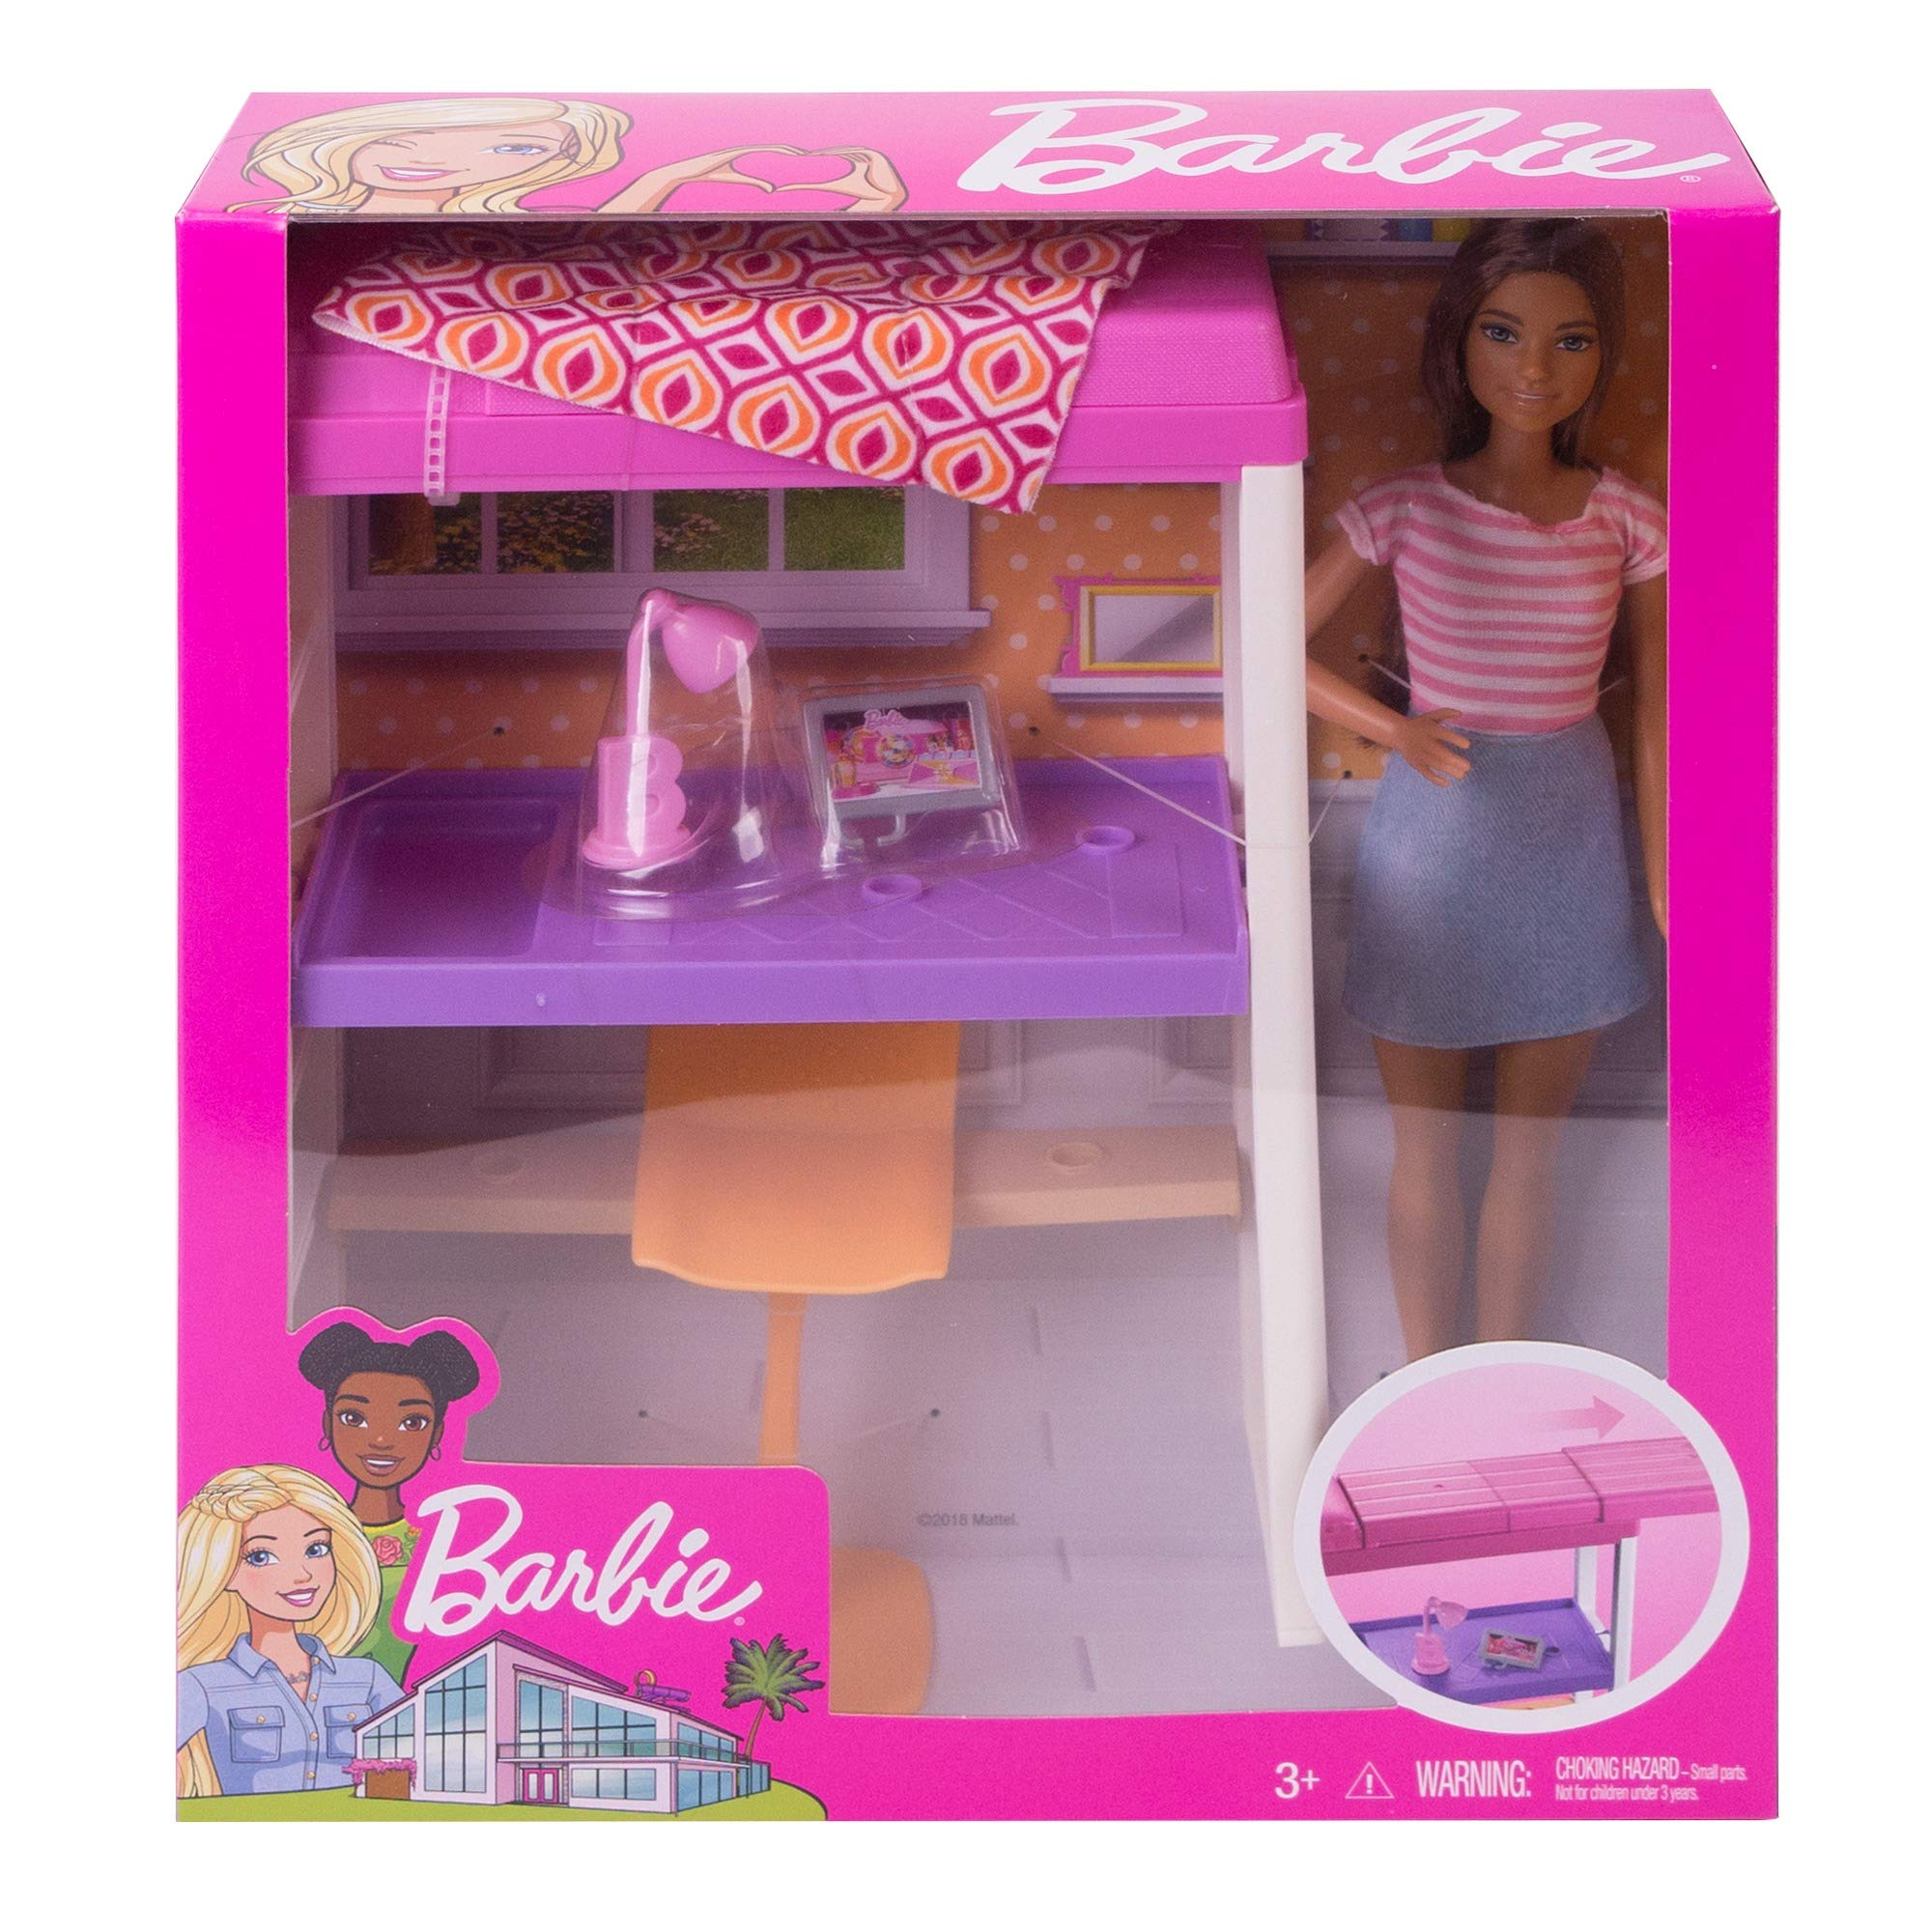 Letto A Castello Barbie.Barbie Doll Loft Bed Desk Playset Buy Online In Lebanon